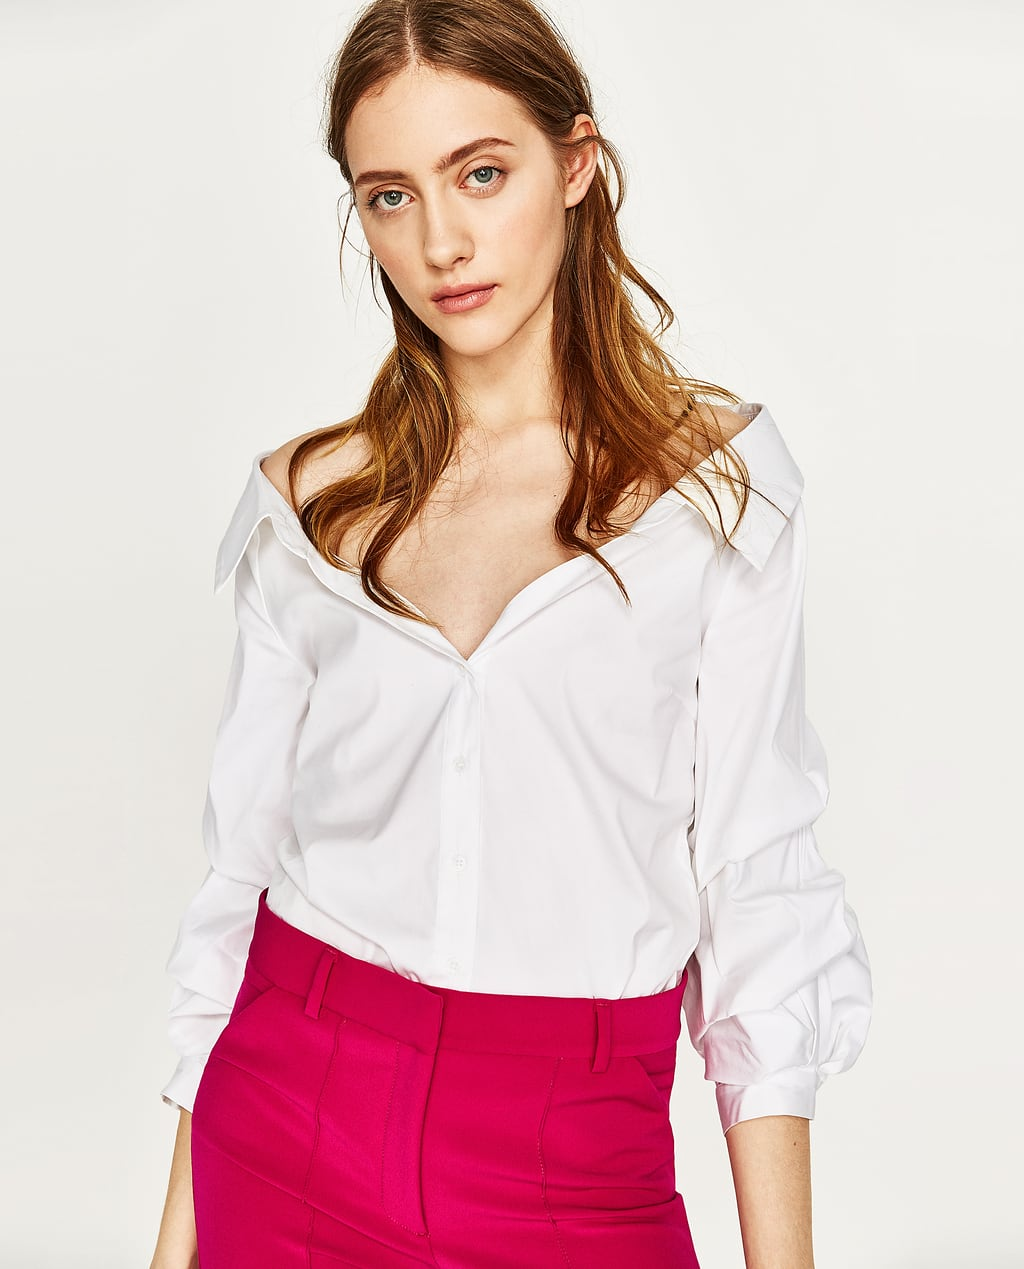 WIDE OPEN NECK SHIRT WITH PUFFY SLEEVES - TOPS-WOMAN | ZARA United ...